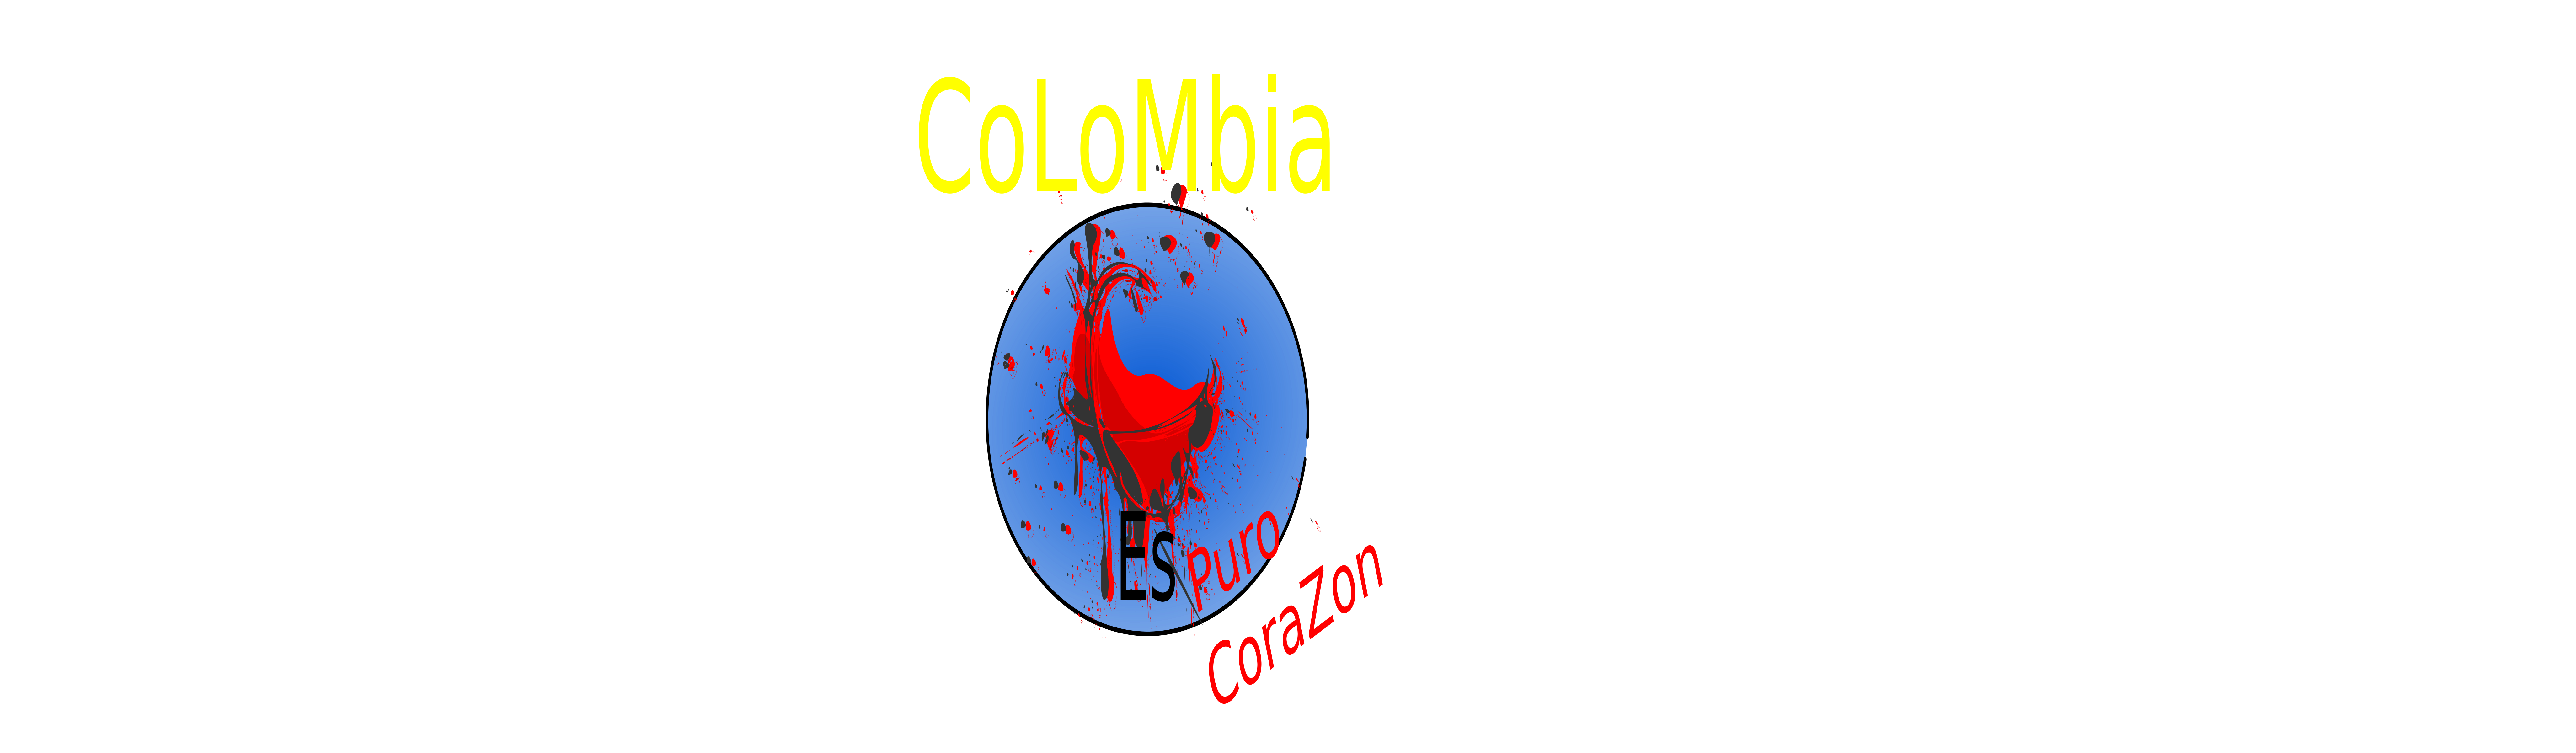 Colombia es Pasion by Bacd94